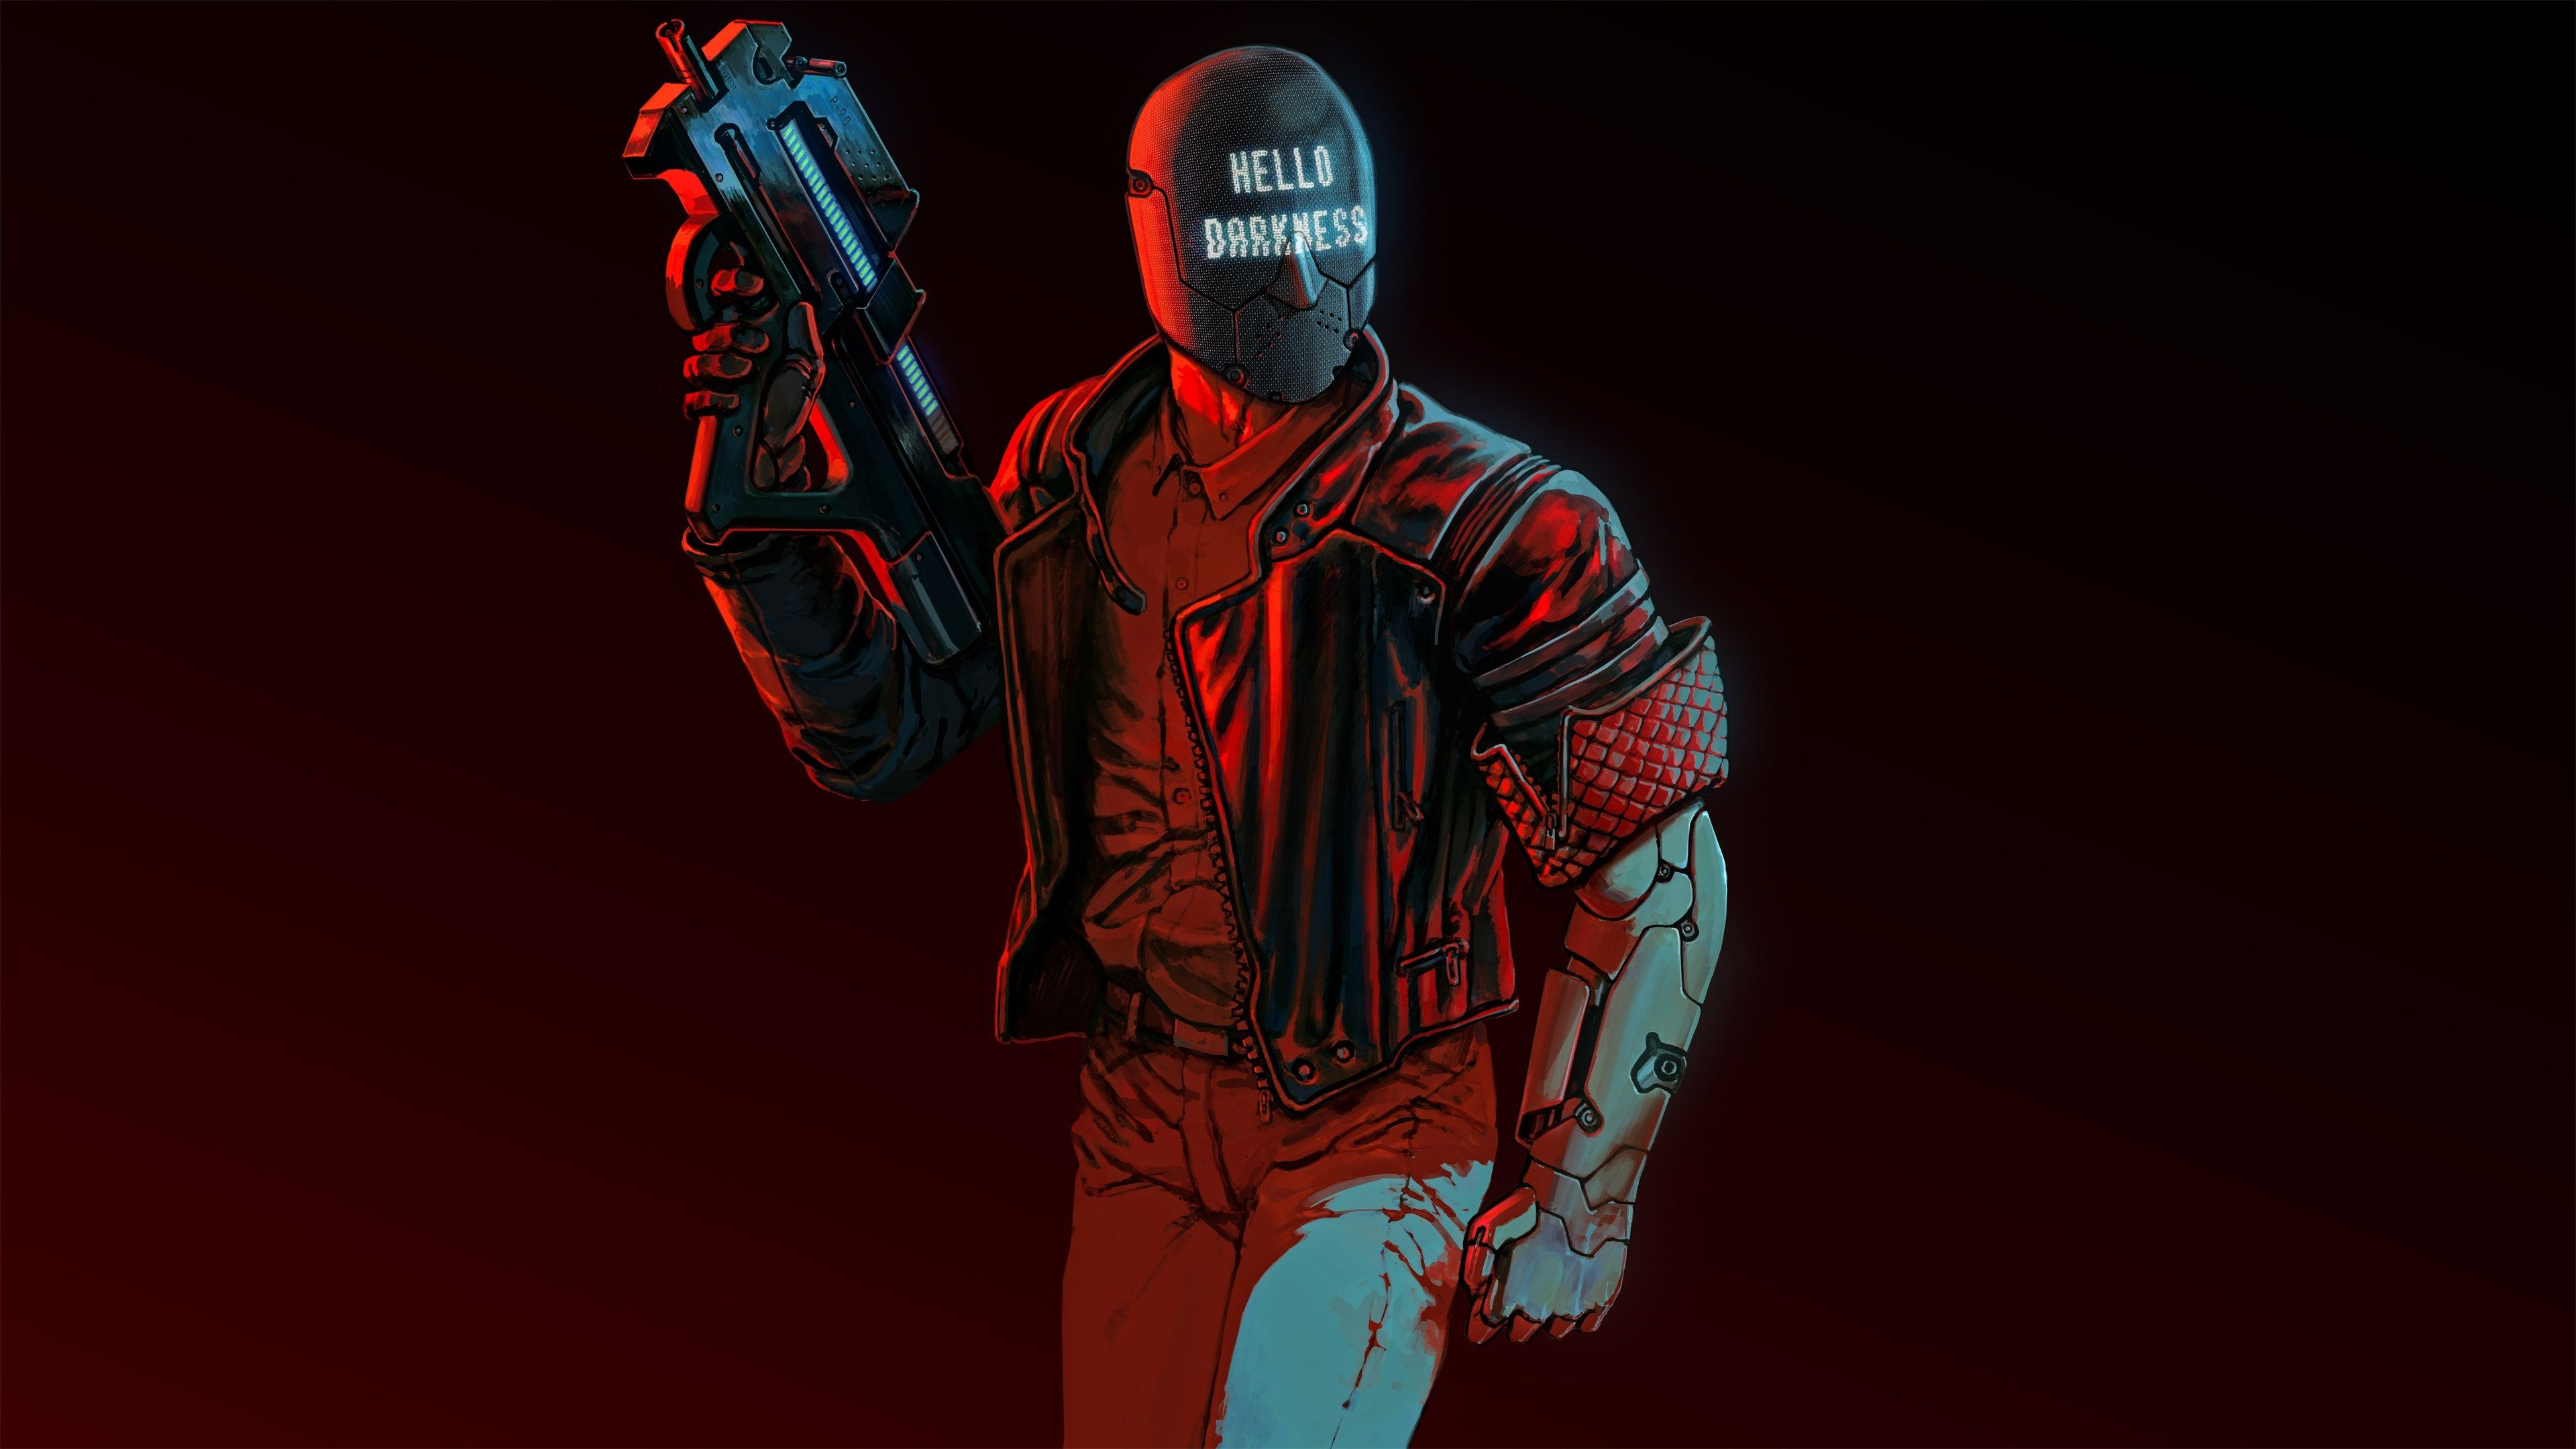 3840x2160 Ruiner 4k Awesome Wallpaper Hd Best Gaming Wallpapers Gaming Wallpapers 4k Gaming Wallpaper